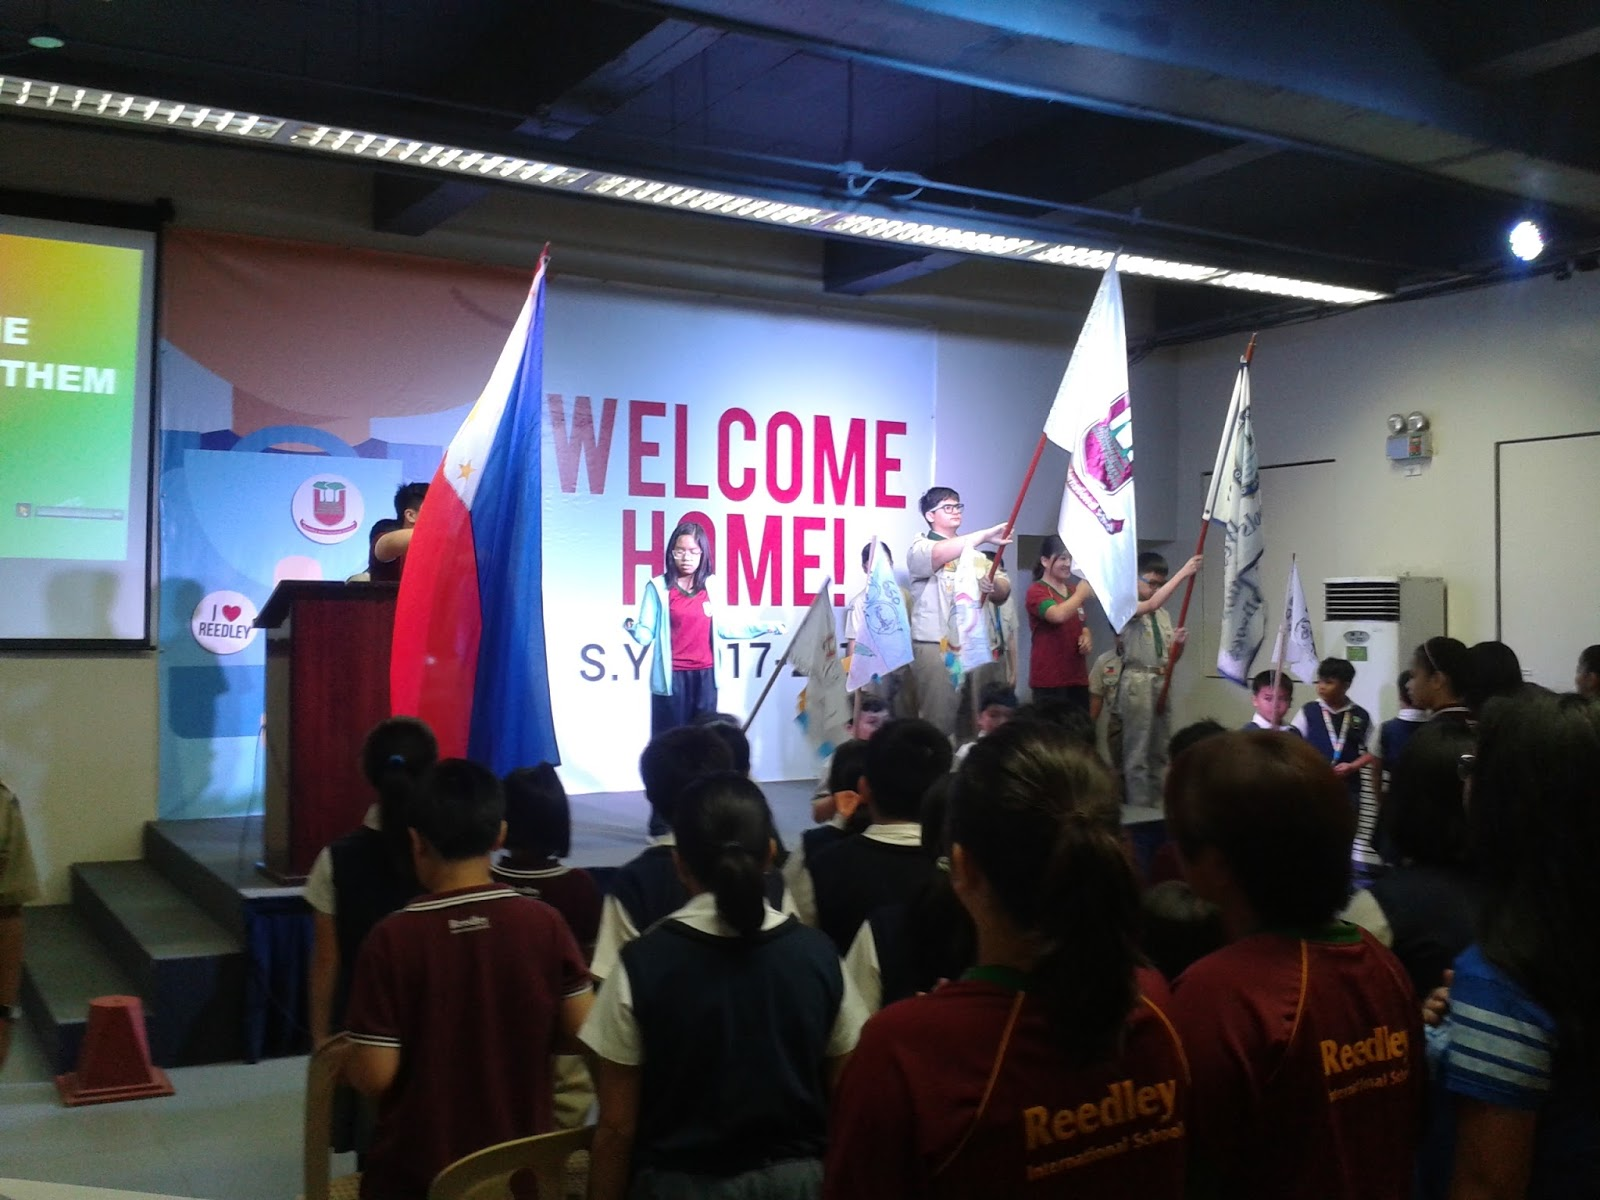 morning assembly Morning assembly to start the day shadowing a wiser girl to see what a day in the life of a student feels like.